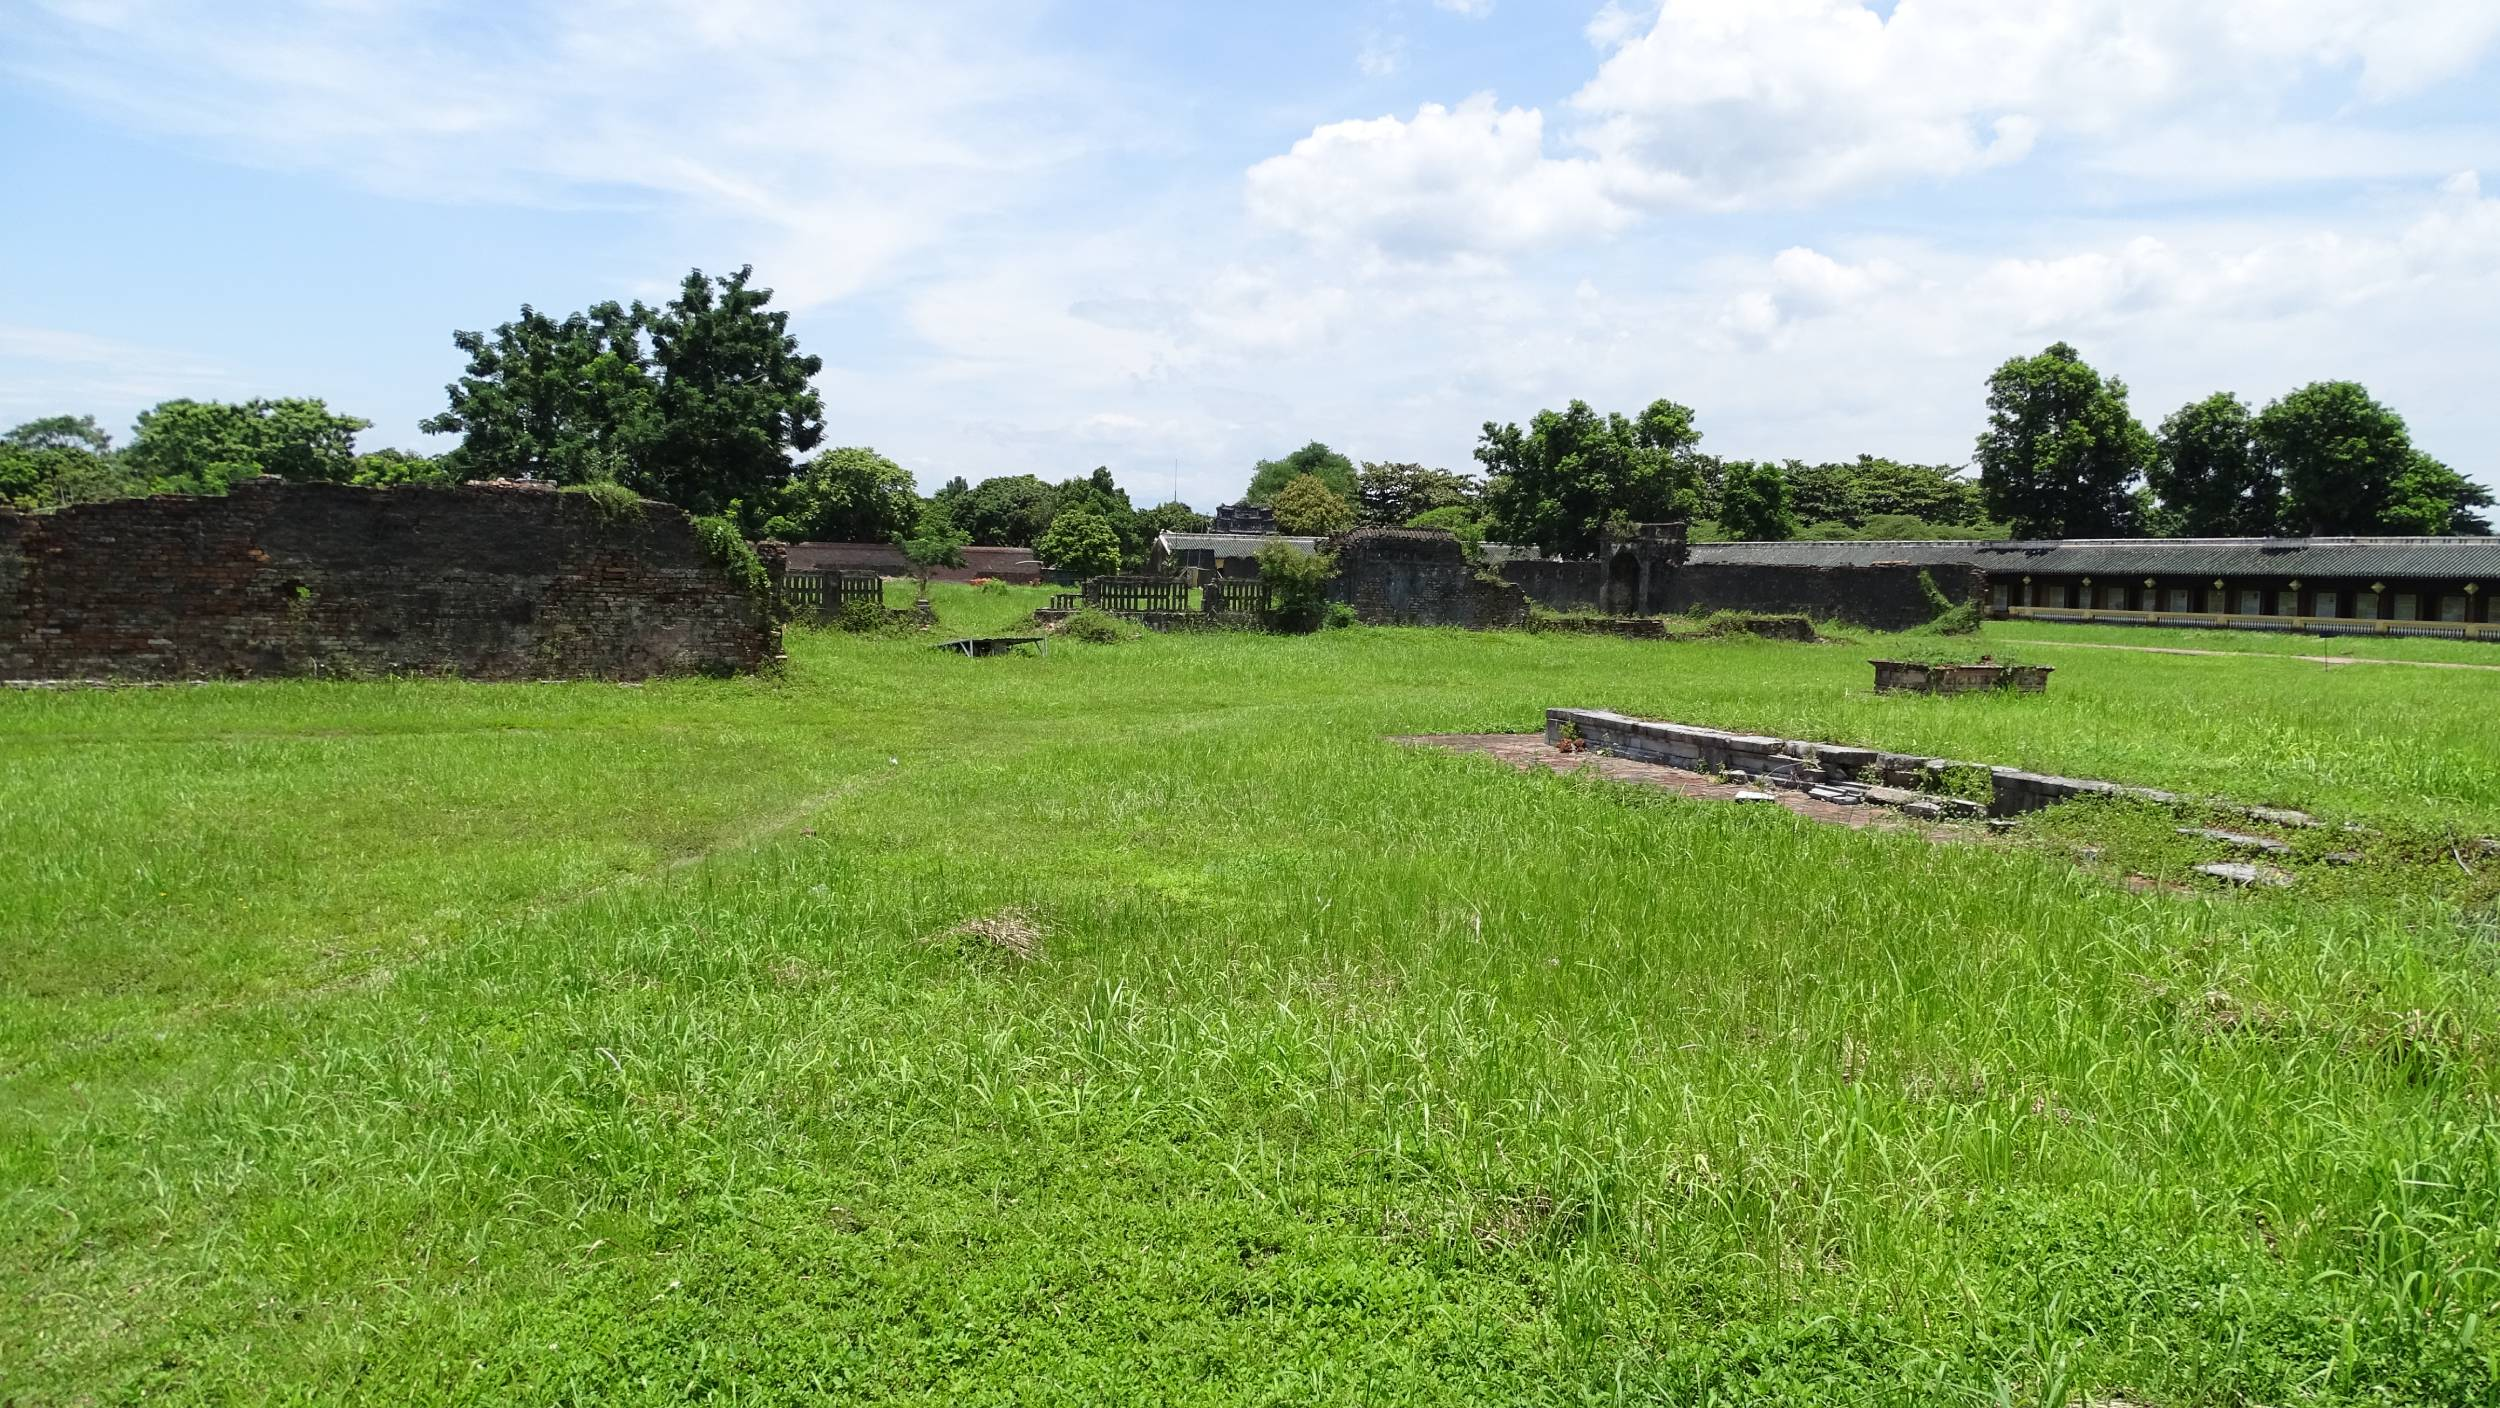 The ruined parts of the Imperial City in Hue